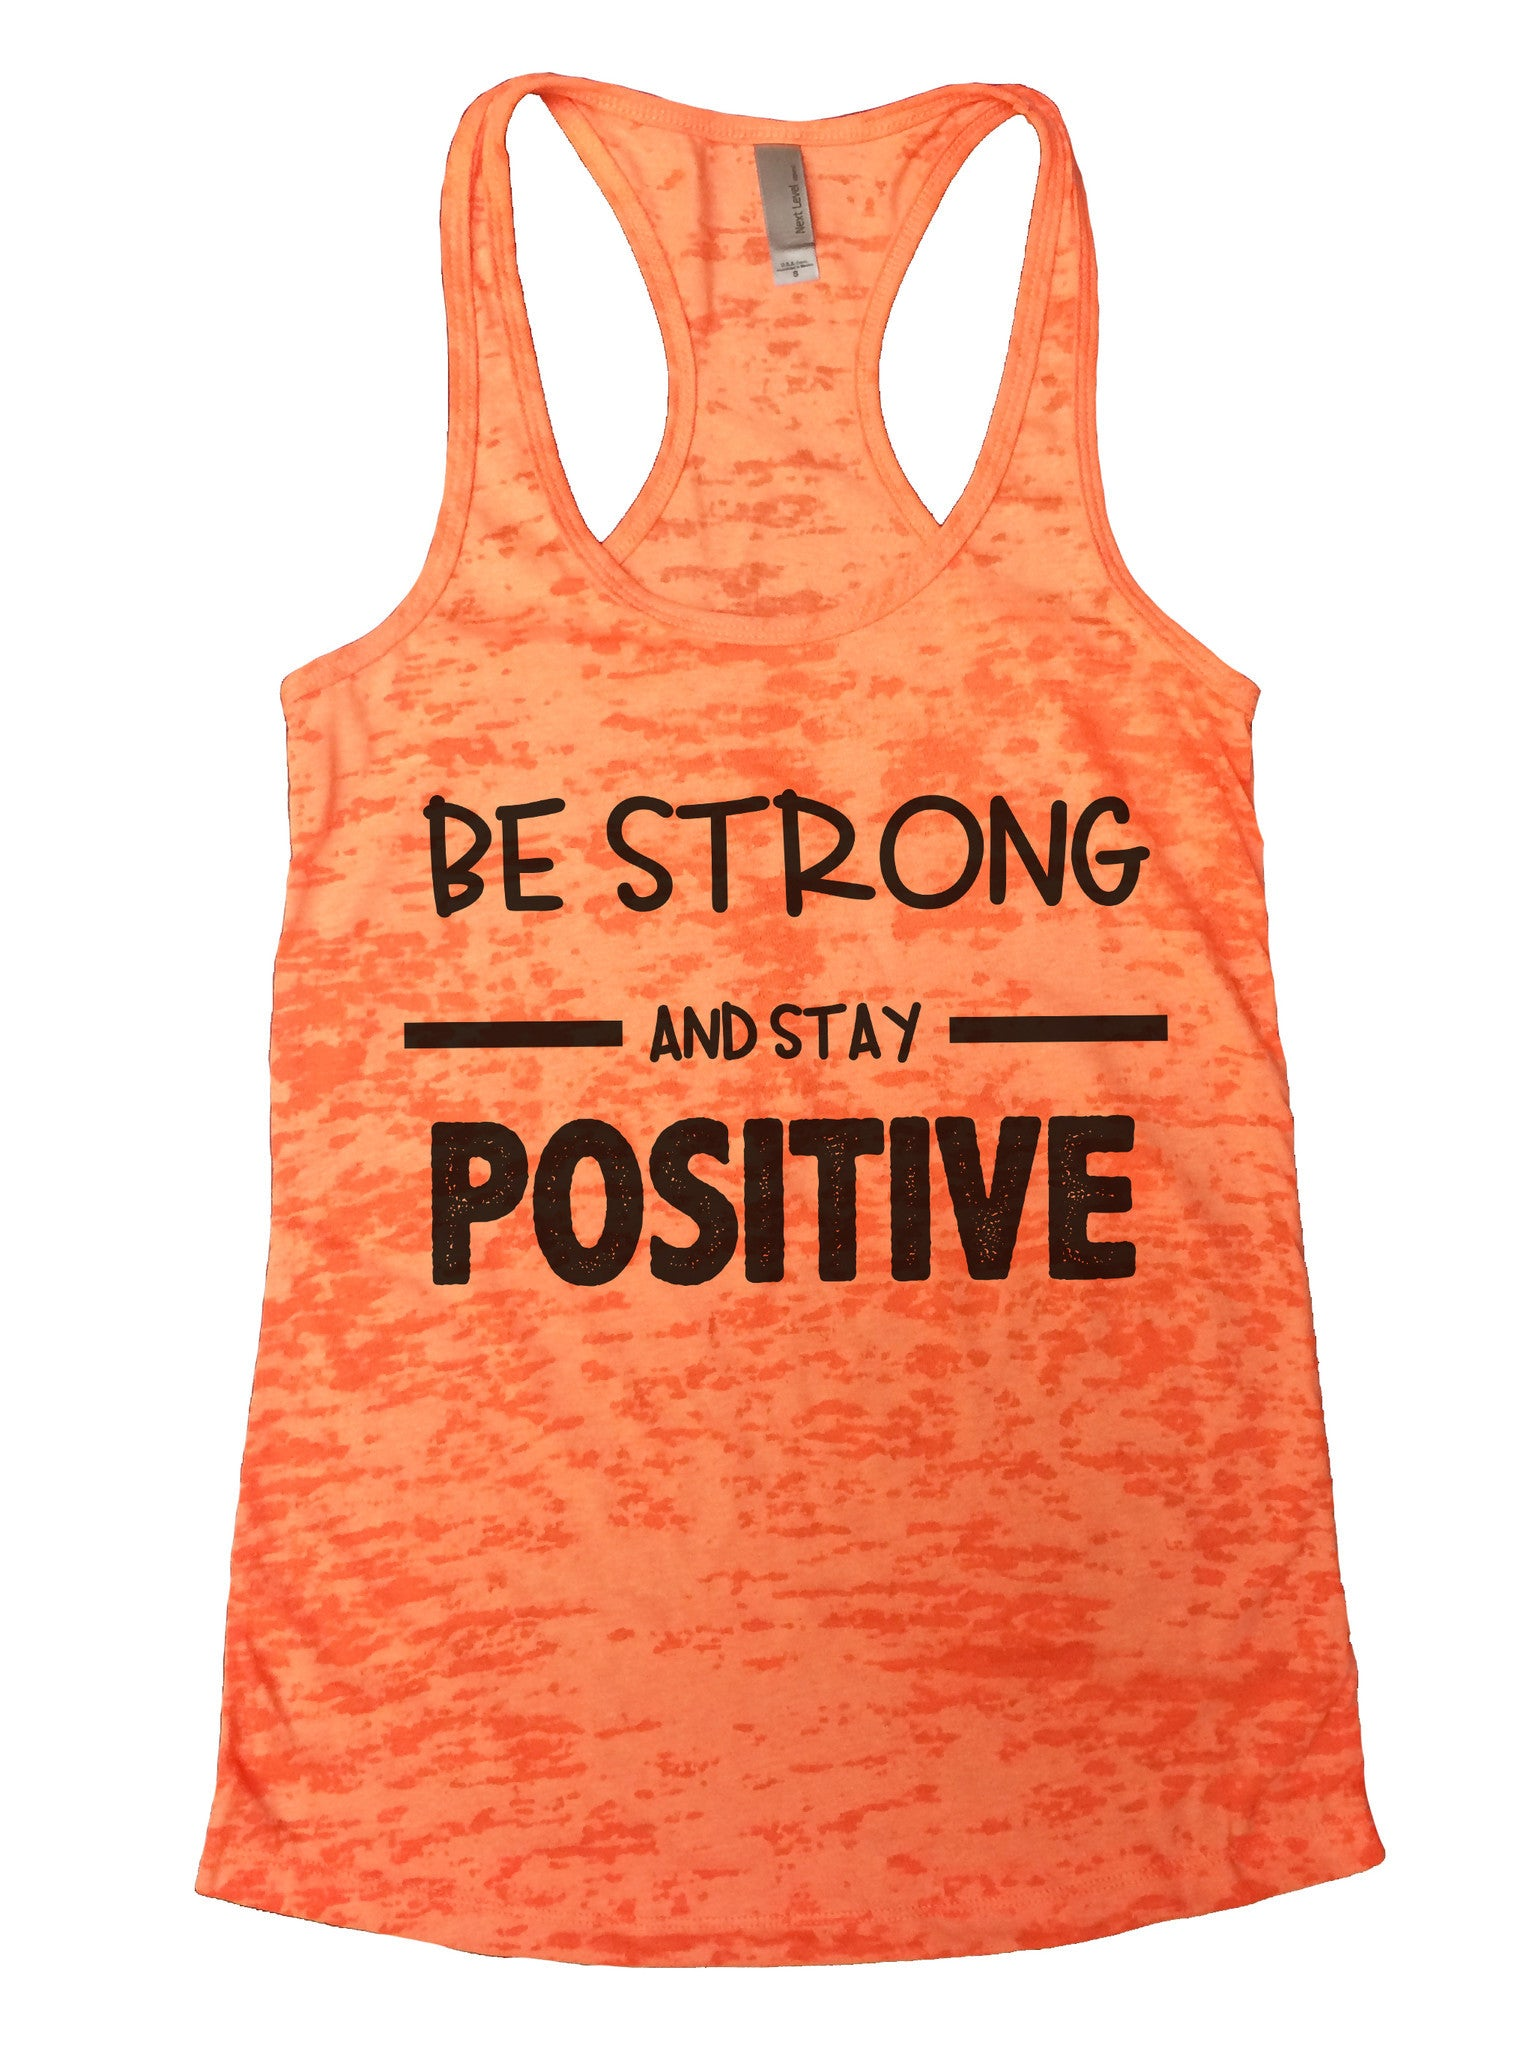 Be Strong And Stay Positive Womens Burnout Tank Top By BurnoutTankTops.com - 657 - Funny Shirts Tank Tops Burnouts and Triblends  - 3